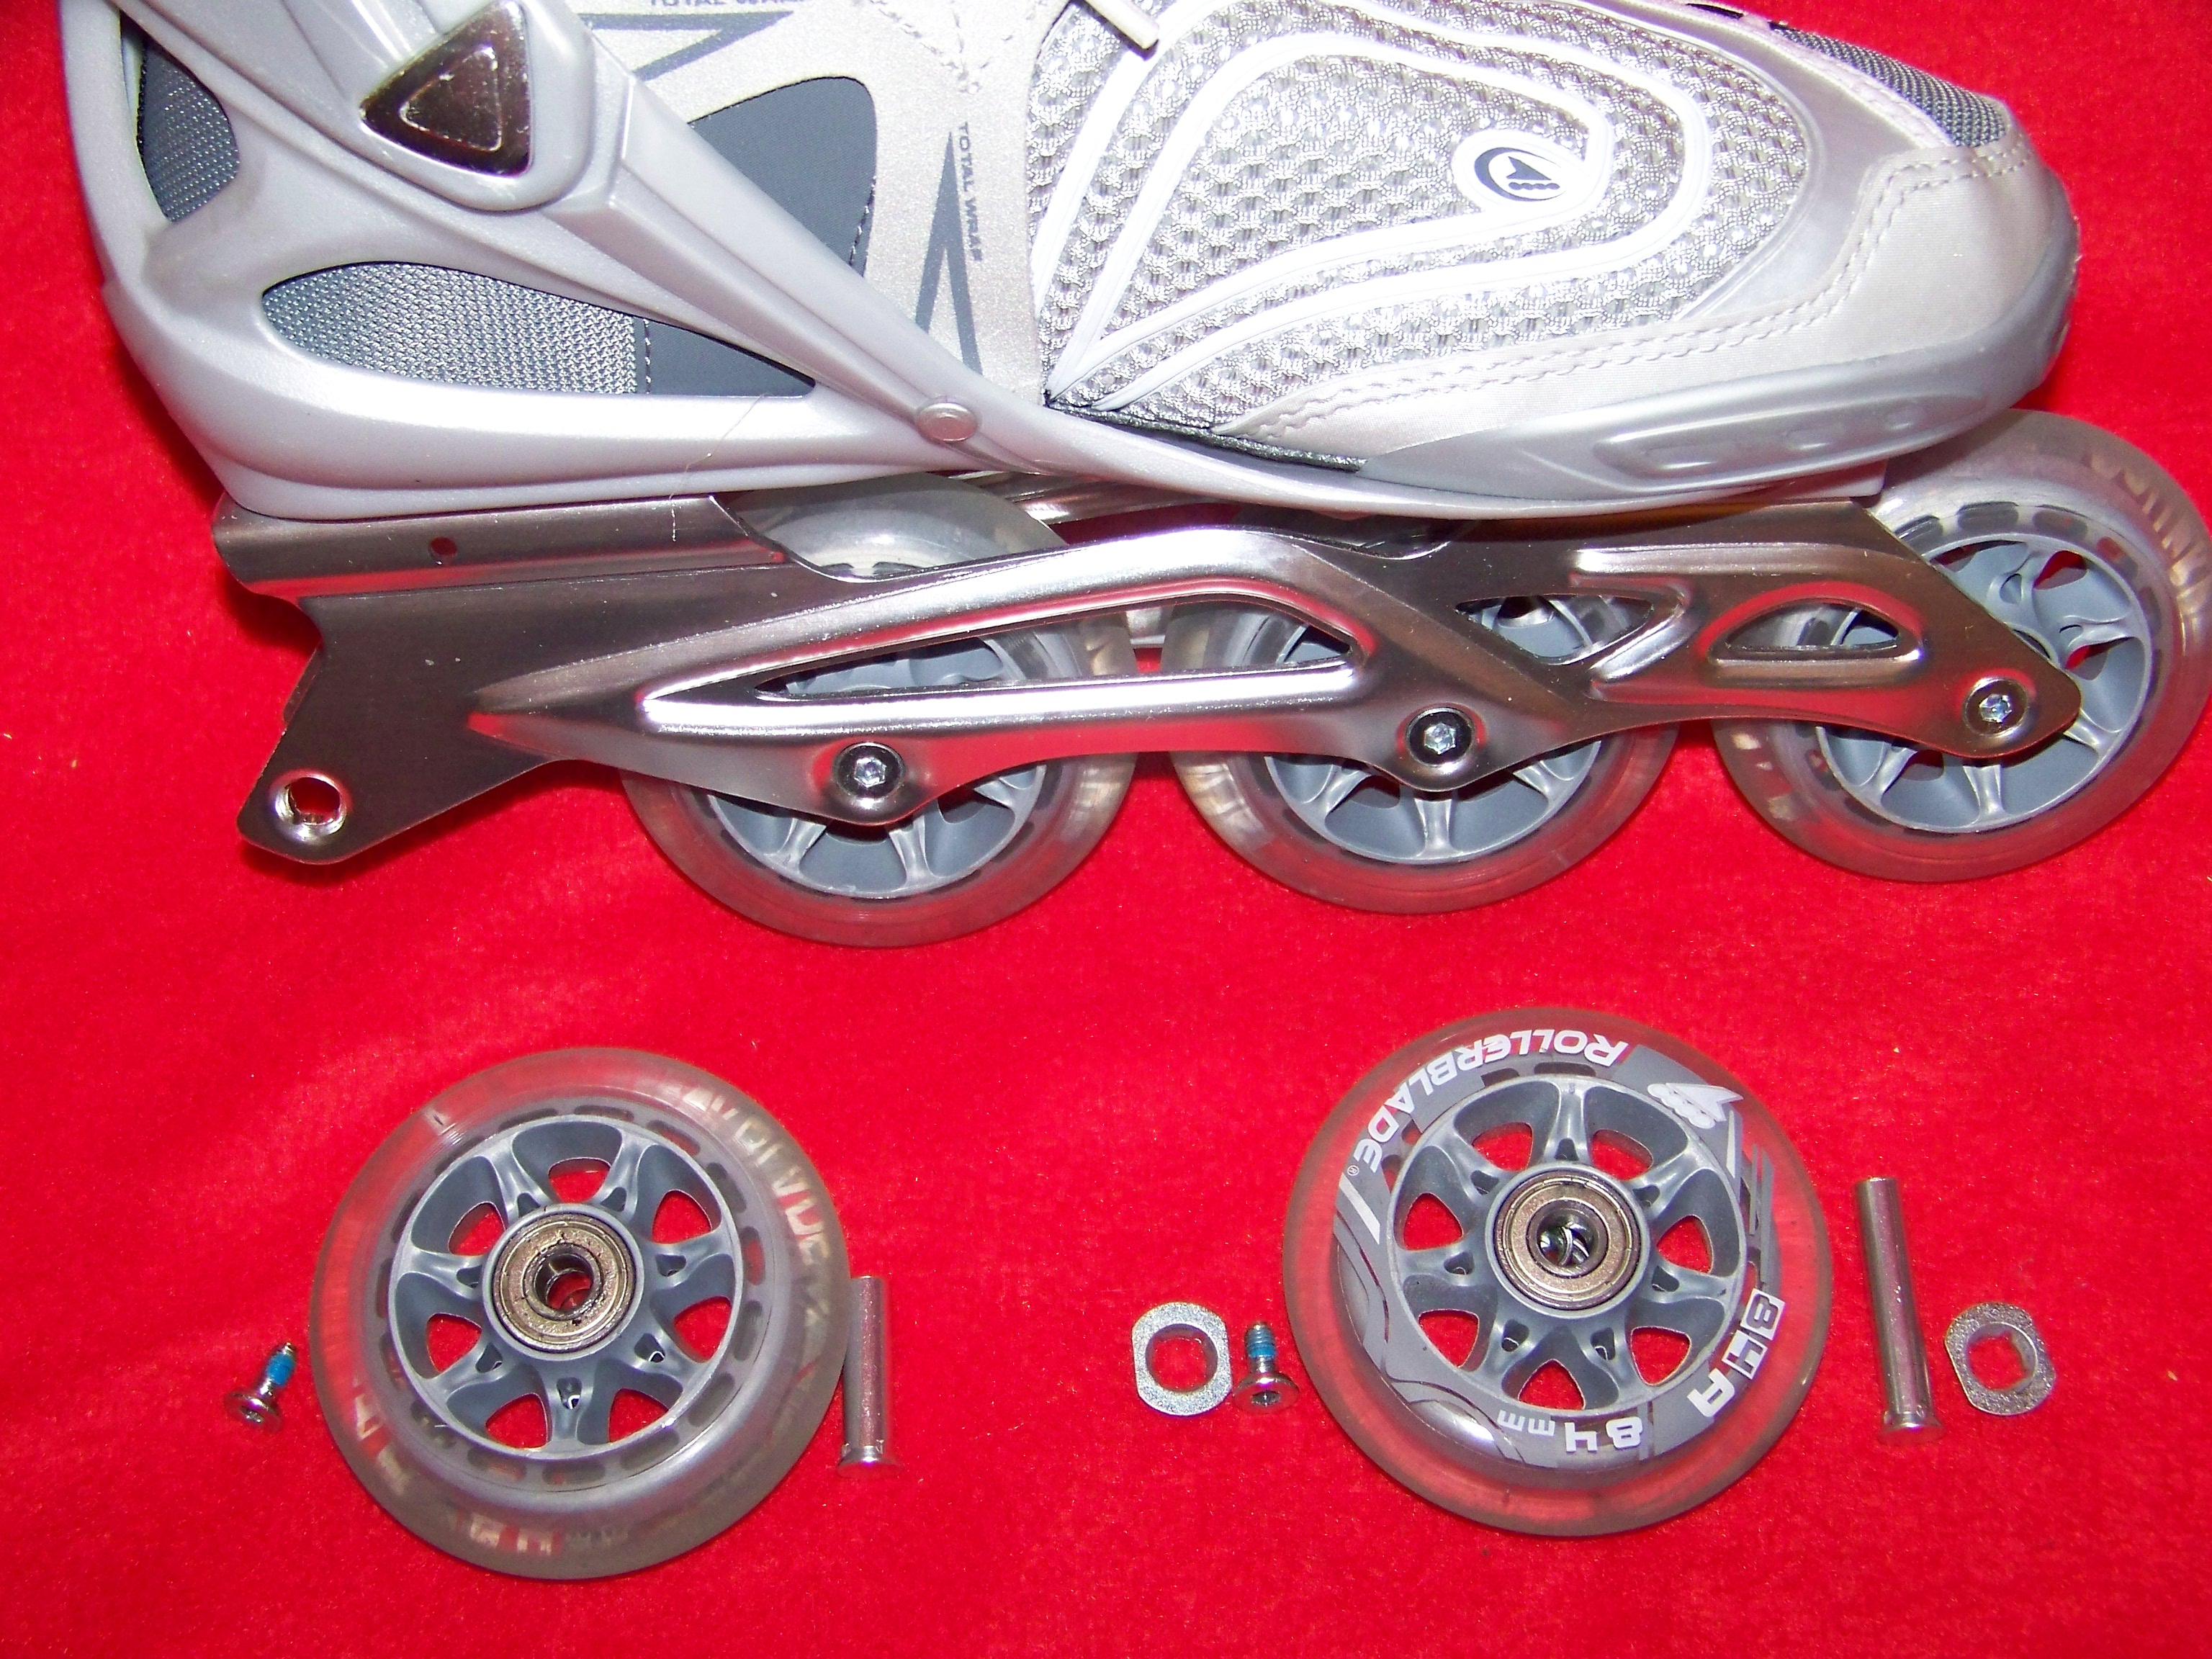 Disassembled wheels showing bolt size difference and washers